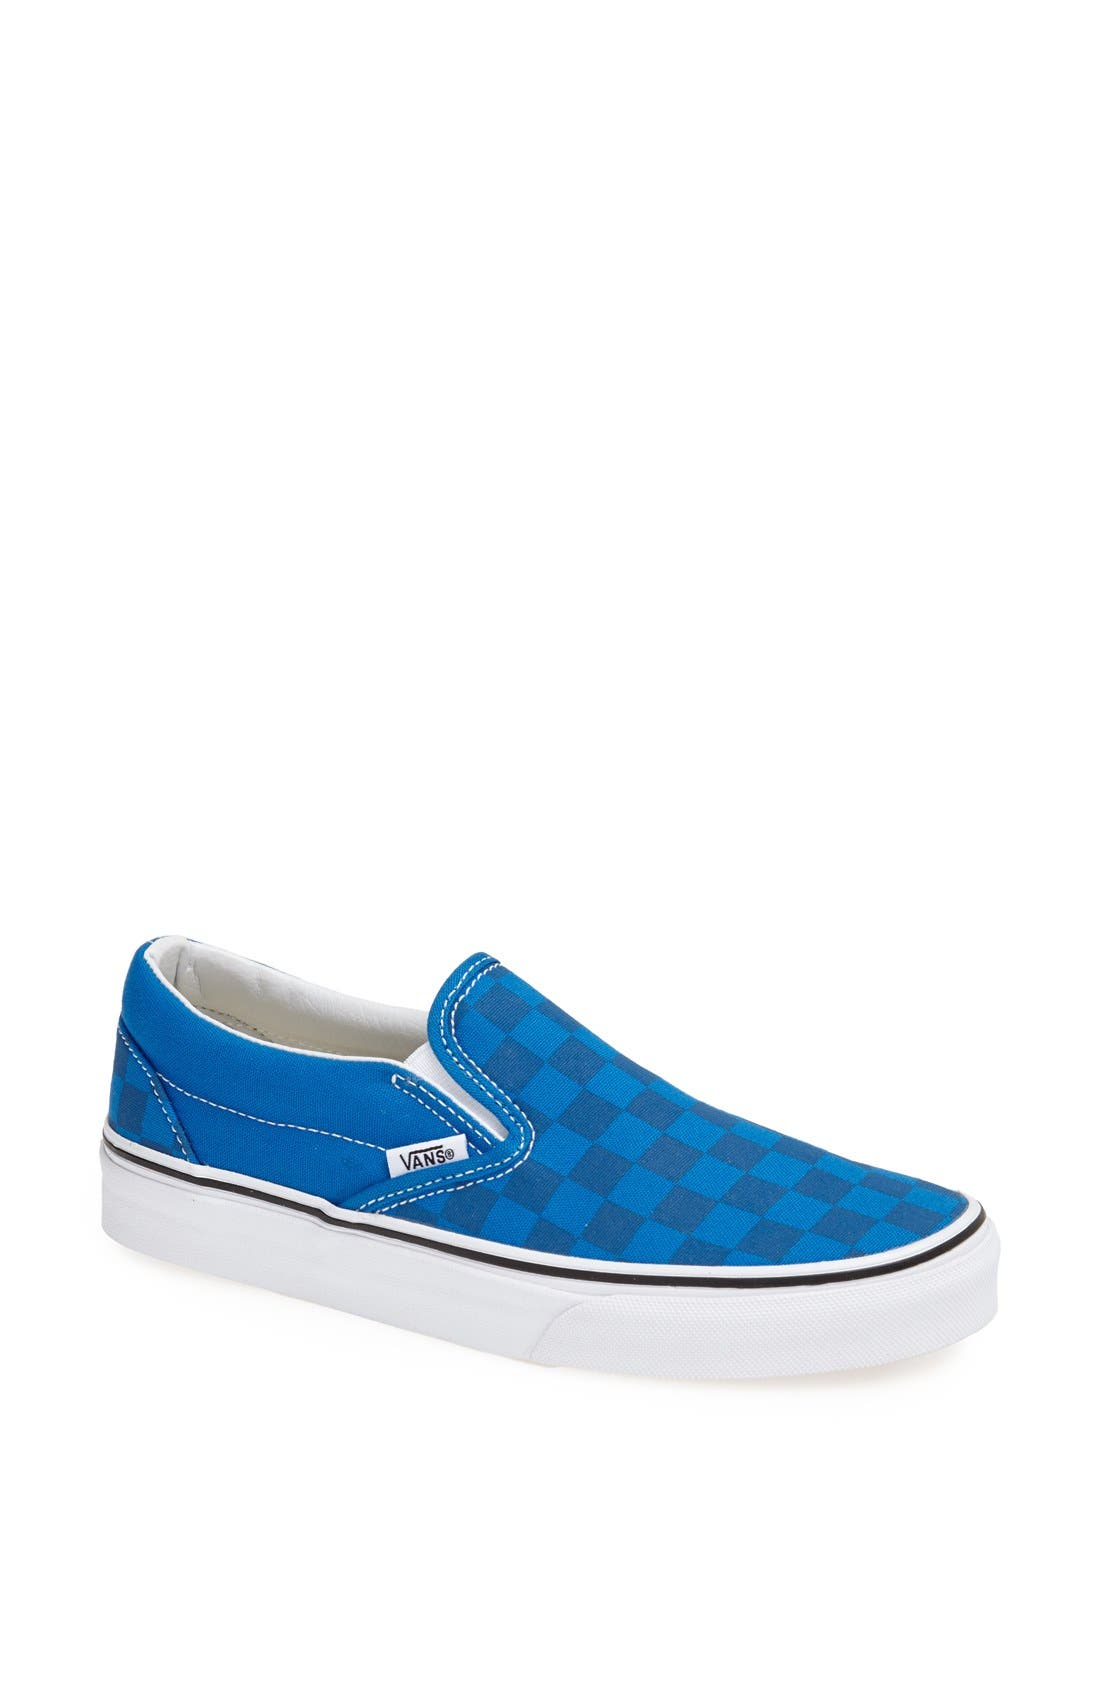 Alternate Image 1 Selected - Vans 'Classic - Checkerboard' Slip-On (Women)